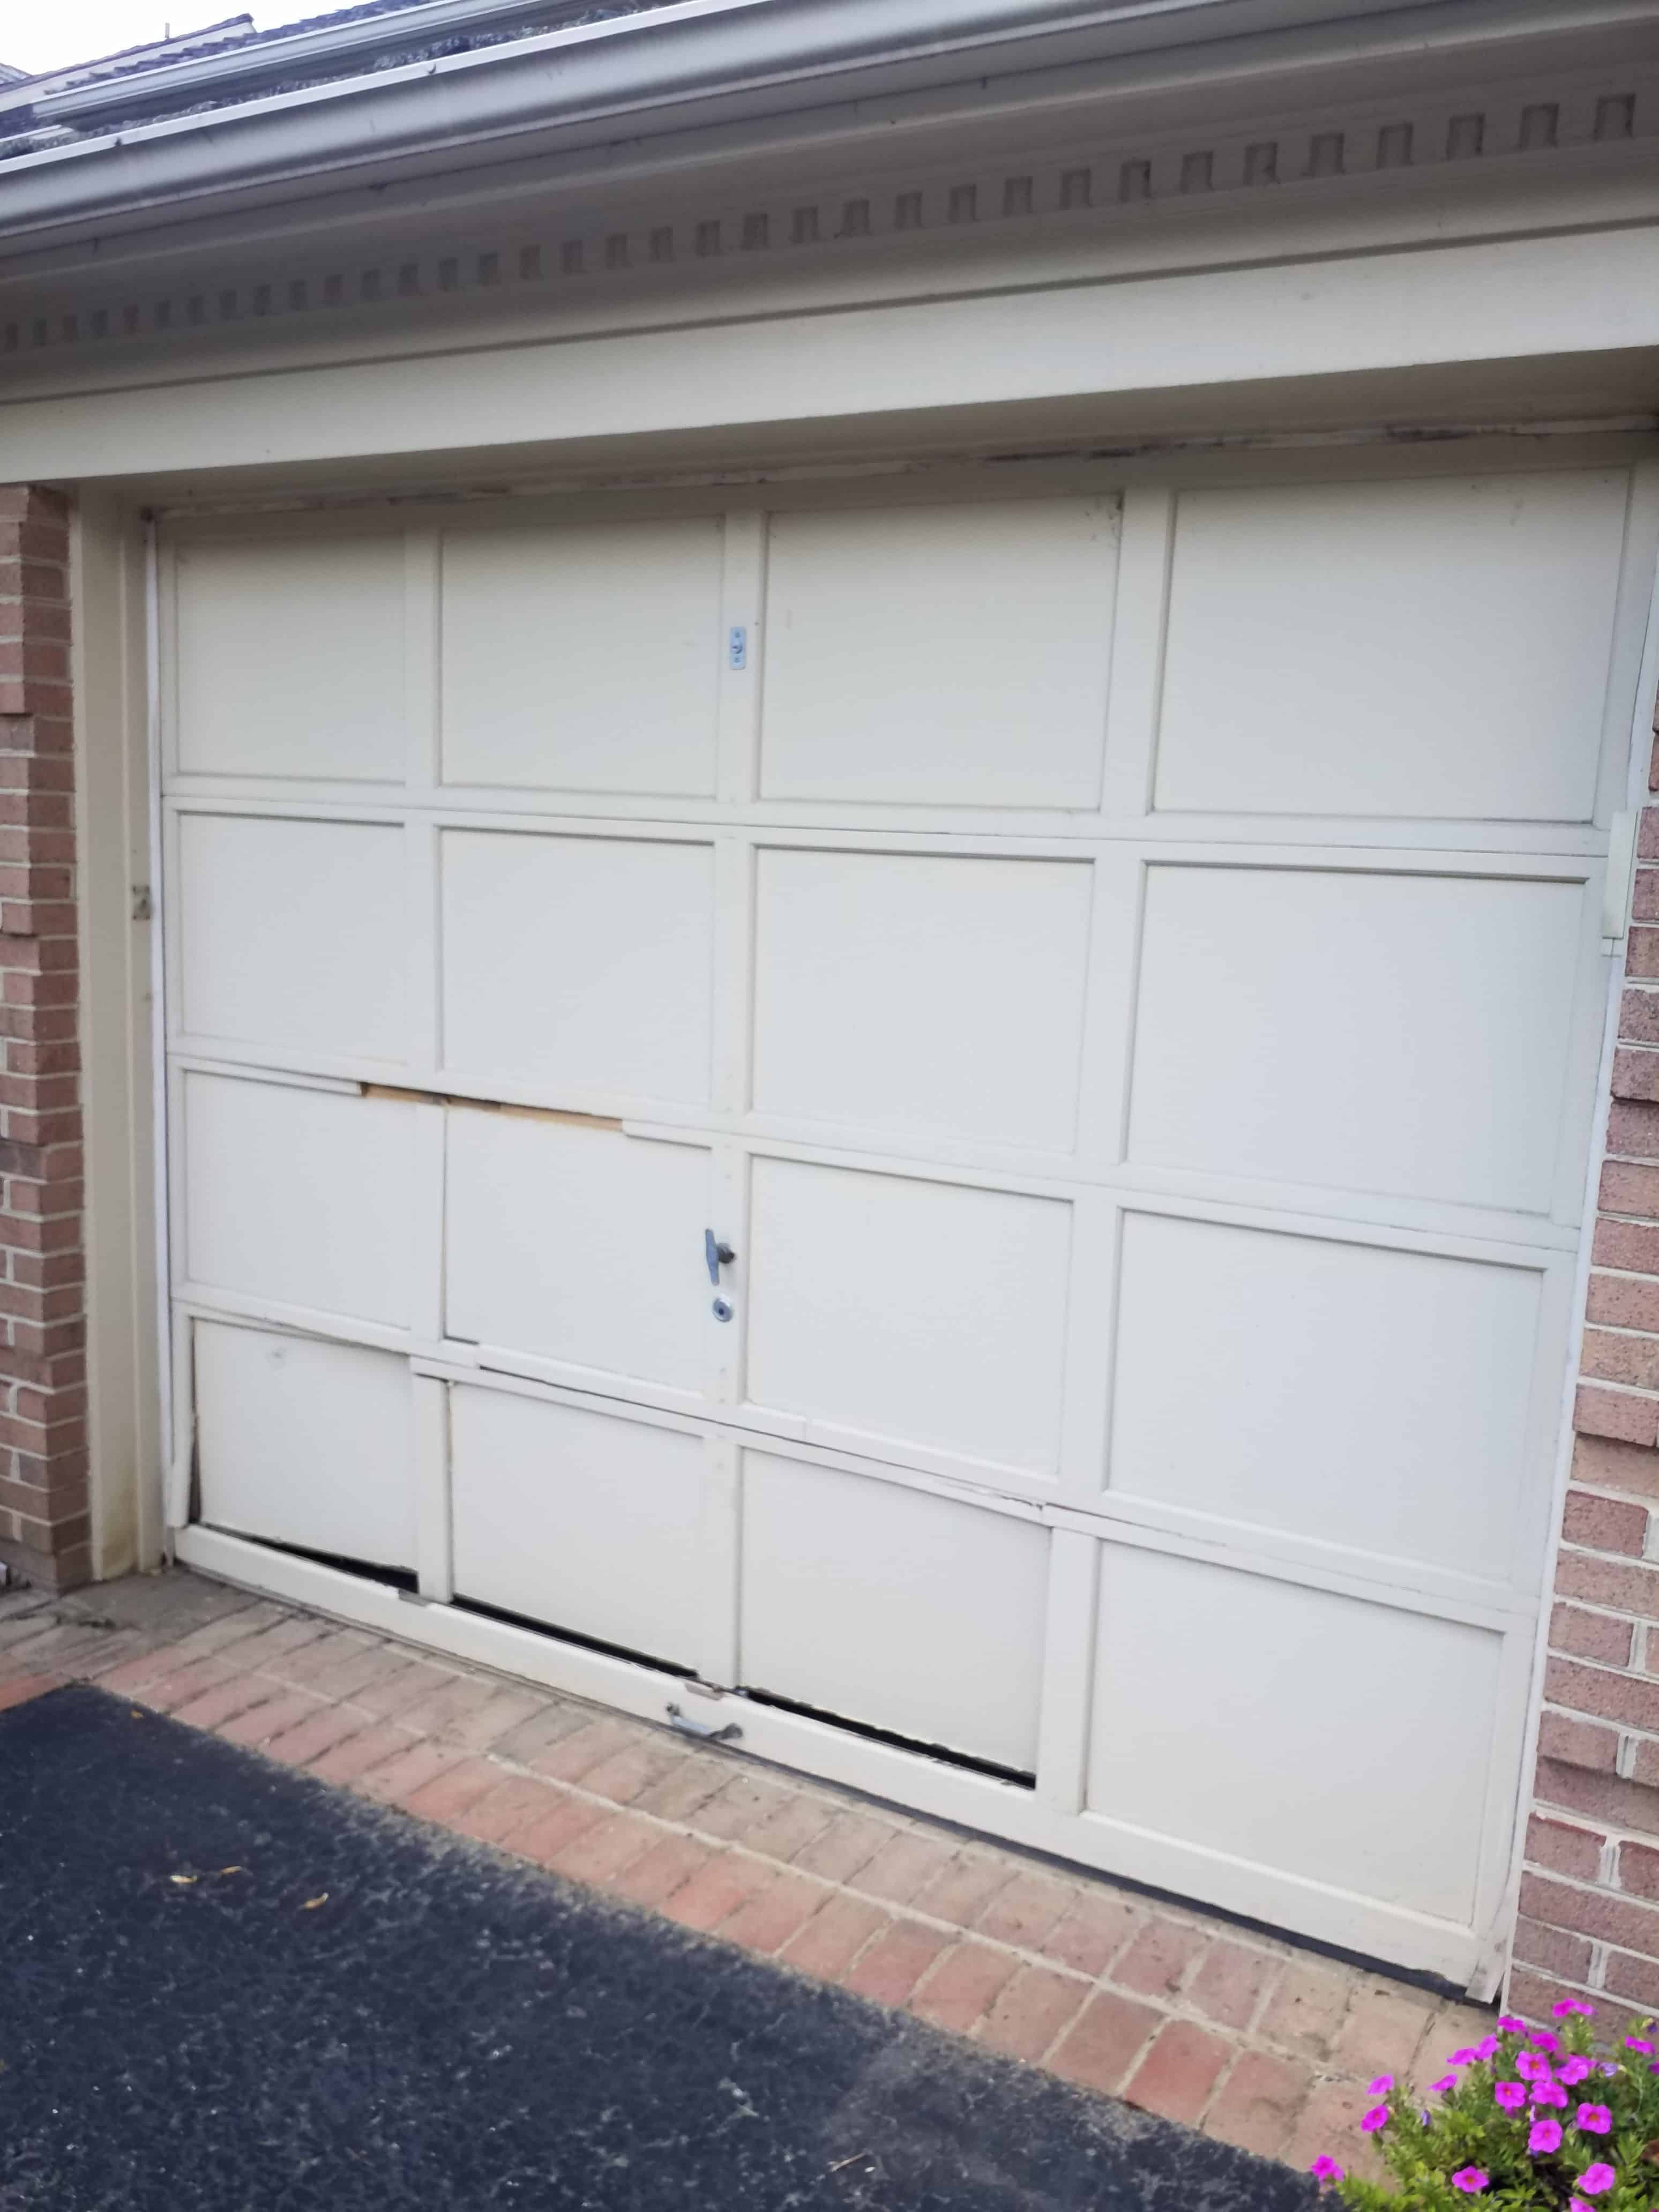 Top 7 Reasons Why Your Garage Door Is Not Closing All The Way